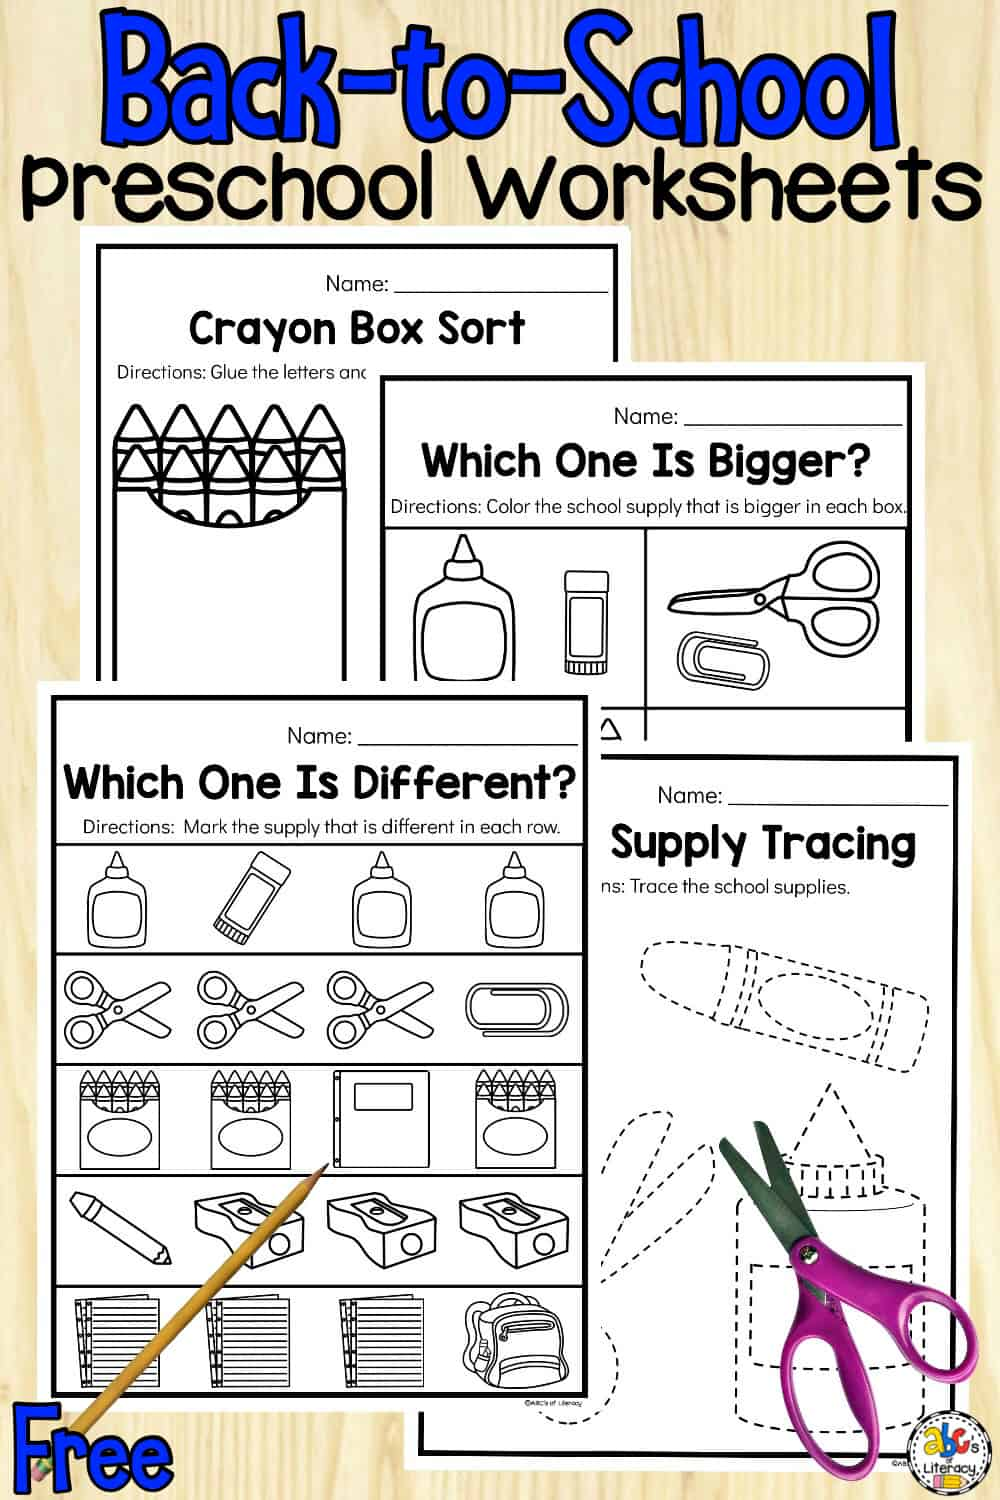 Back-to-School Preschool Worksheets